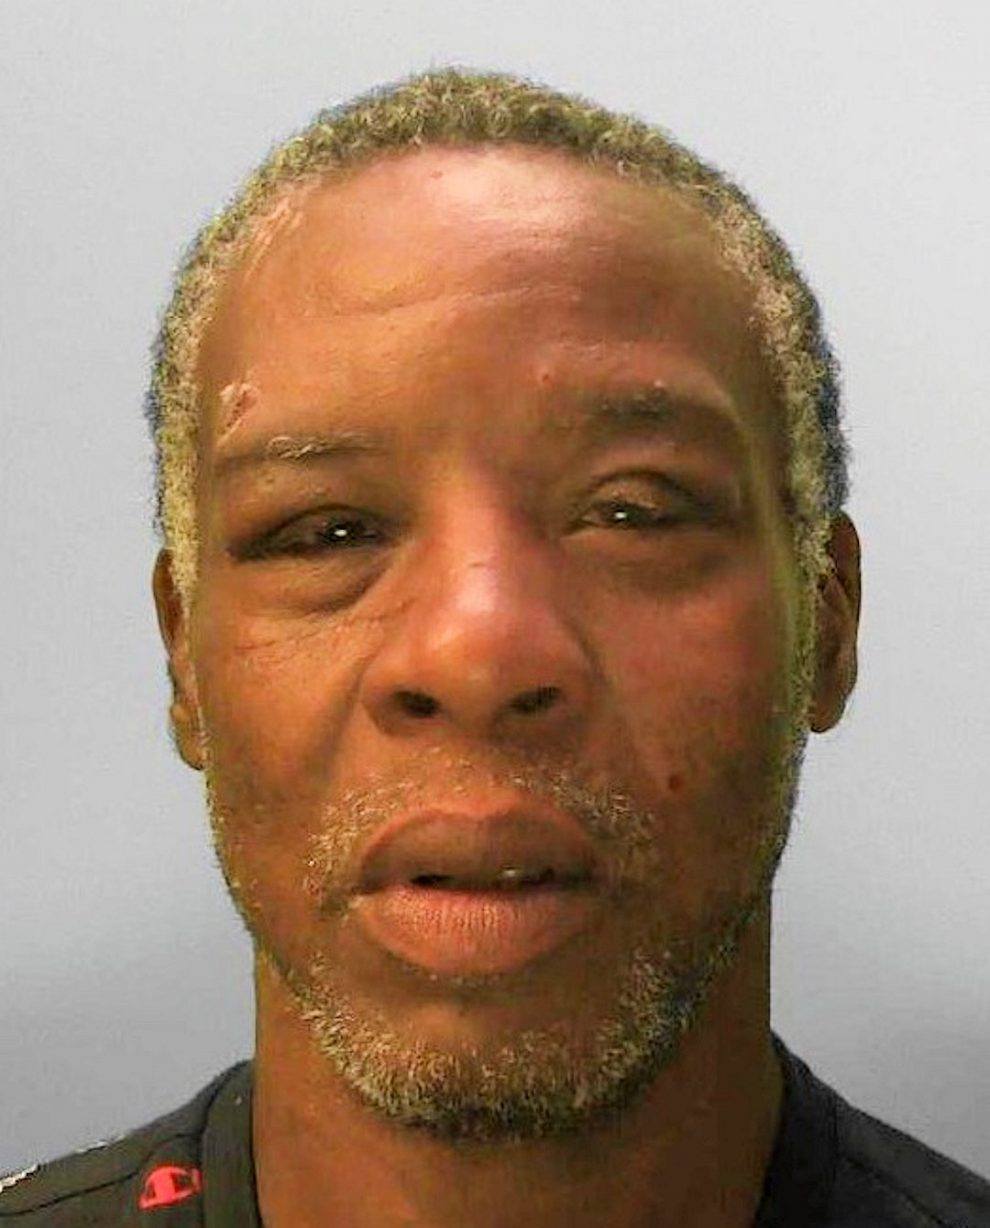 Andrew Charles wanted for recall to prison.